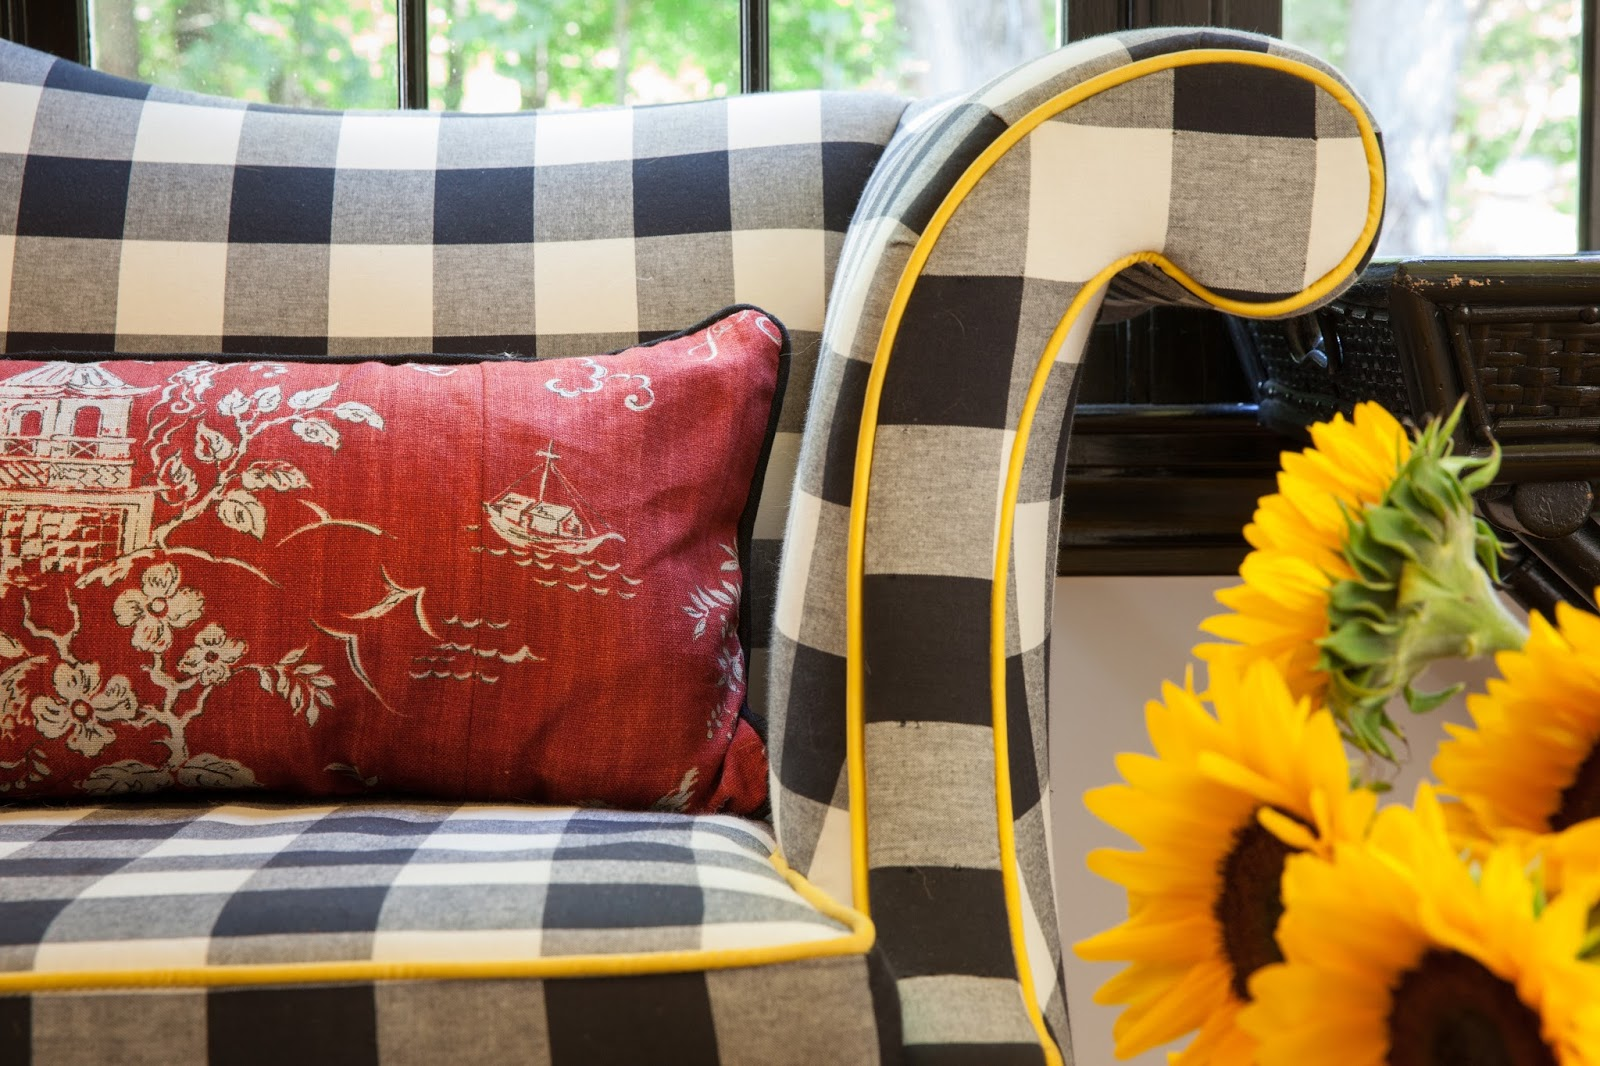 """Inspired by a photo of Grace Kelly in a red dress, lounging on a black and white sofa with yellow pillows, Kim wanted to create a space that was classic, fun, and fresh.  The linen toile from GP & Baker keeps the black and white buffalo check from looking too country. To tie the colors together, she added a yellow trim to the seating, and the ceiling was painted San Pedro Morning, by Benjamin Moore. """"Even on a snowy winter day, my house feels like the sun is shining!"""" says Kim."""